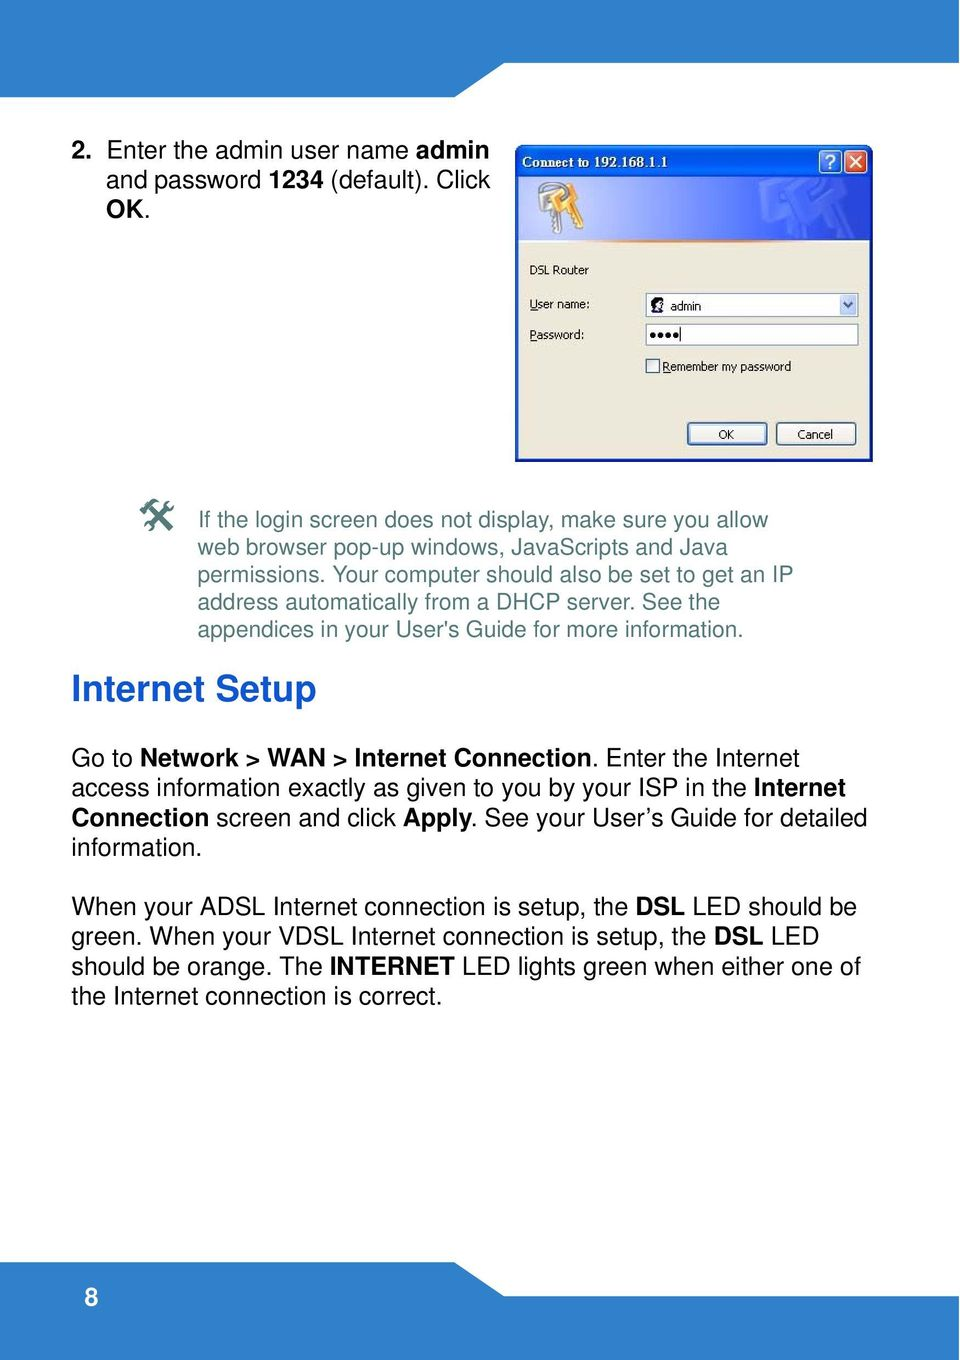 Internet Setup Go to Network > WAN > Internet Connection. Enter the Internet access information exactly as given to you by your ISP in the Internet Connection screen and click Apply.